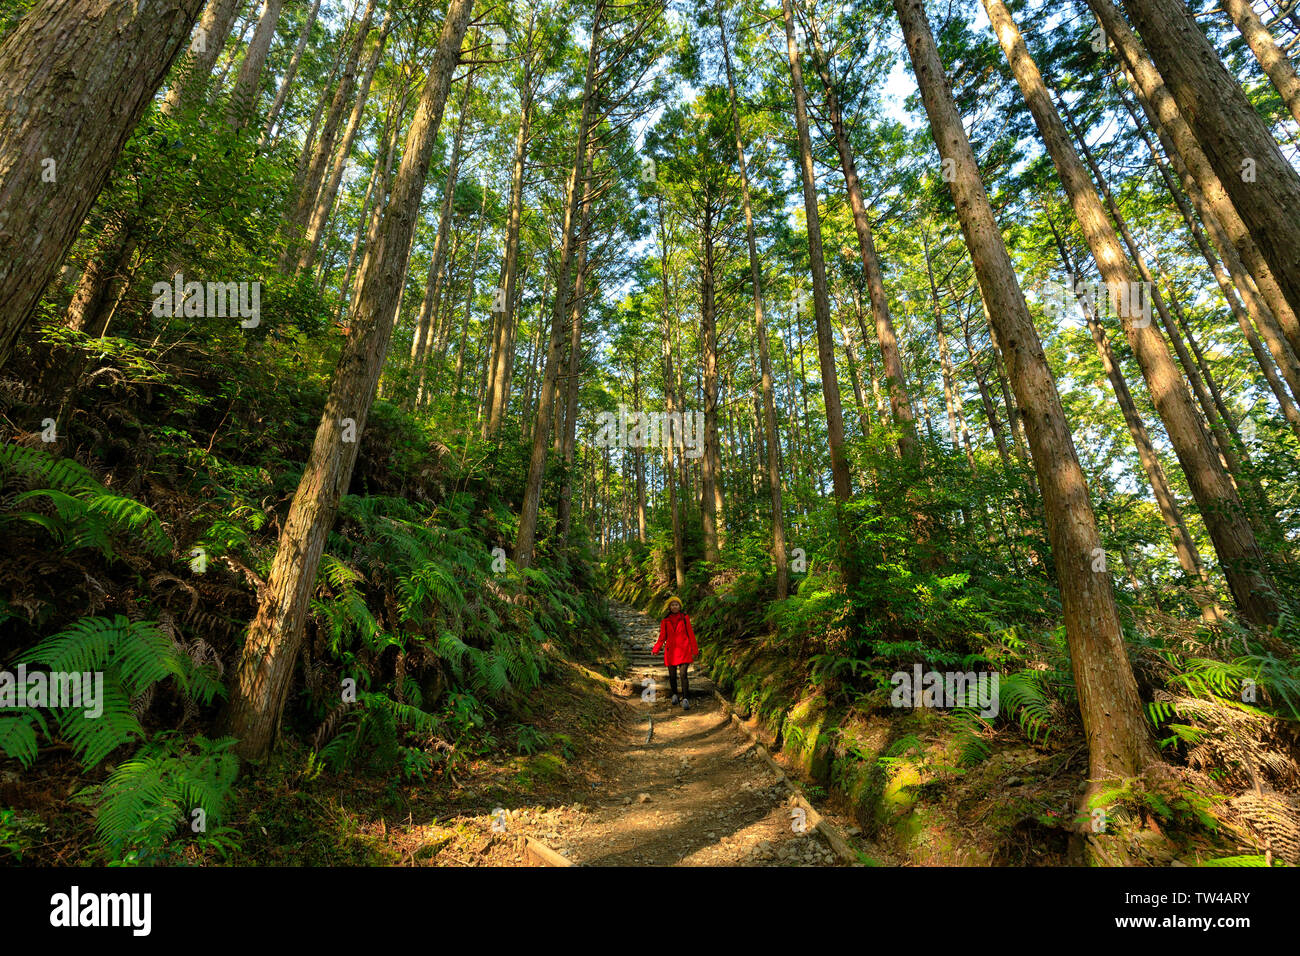 Asian woman in red coat, trekking in the Kumano Kodo forest, Japan - Stock Image